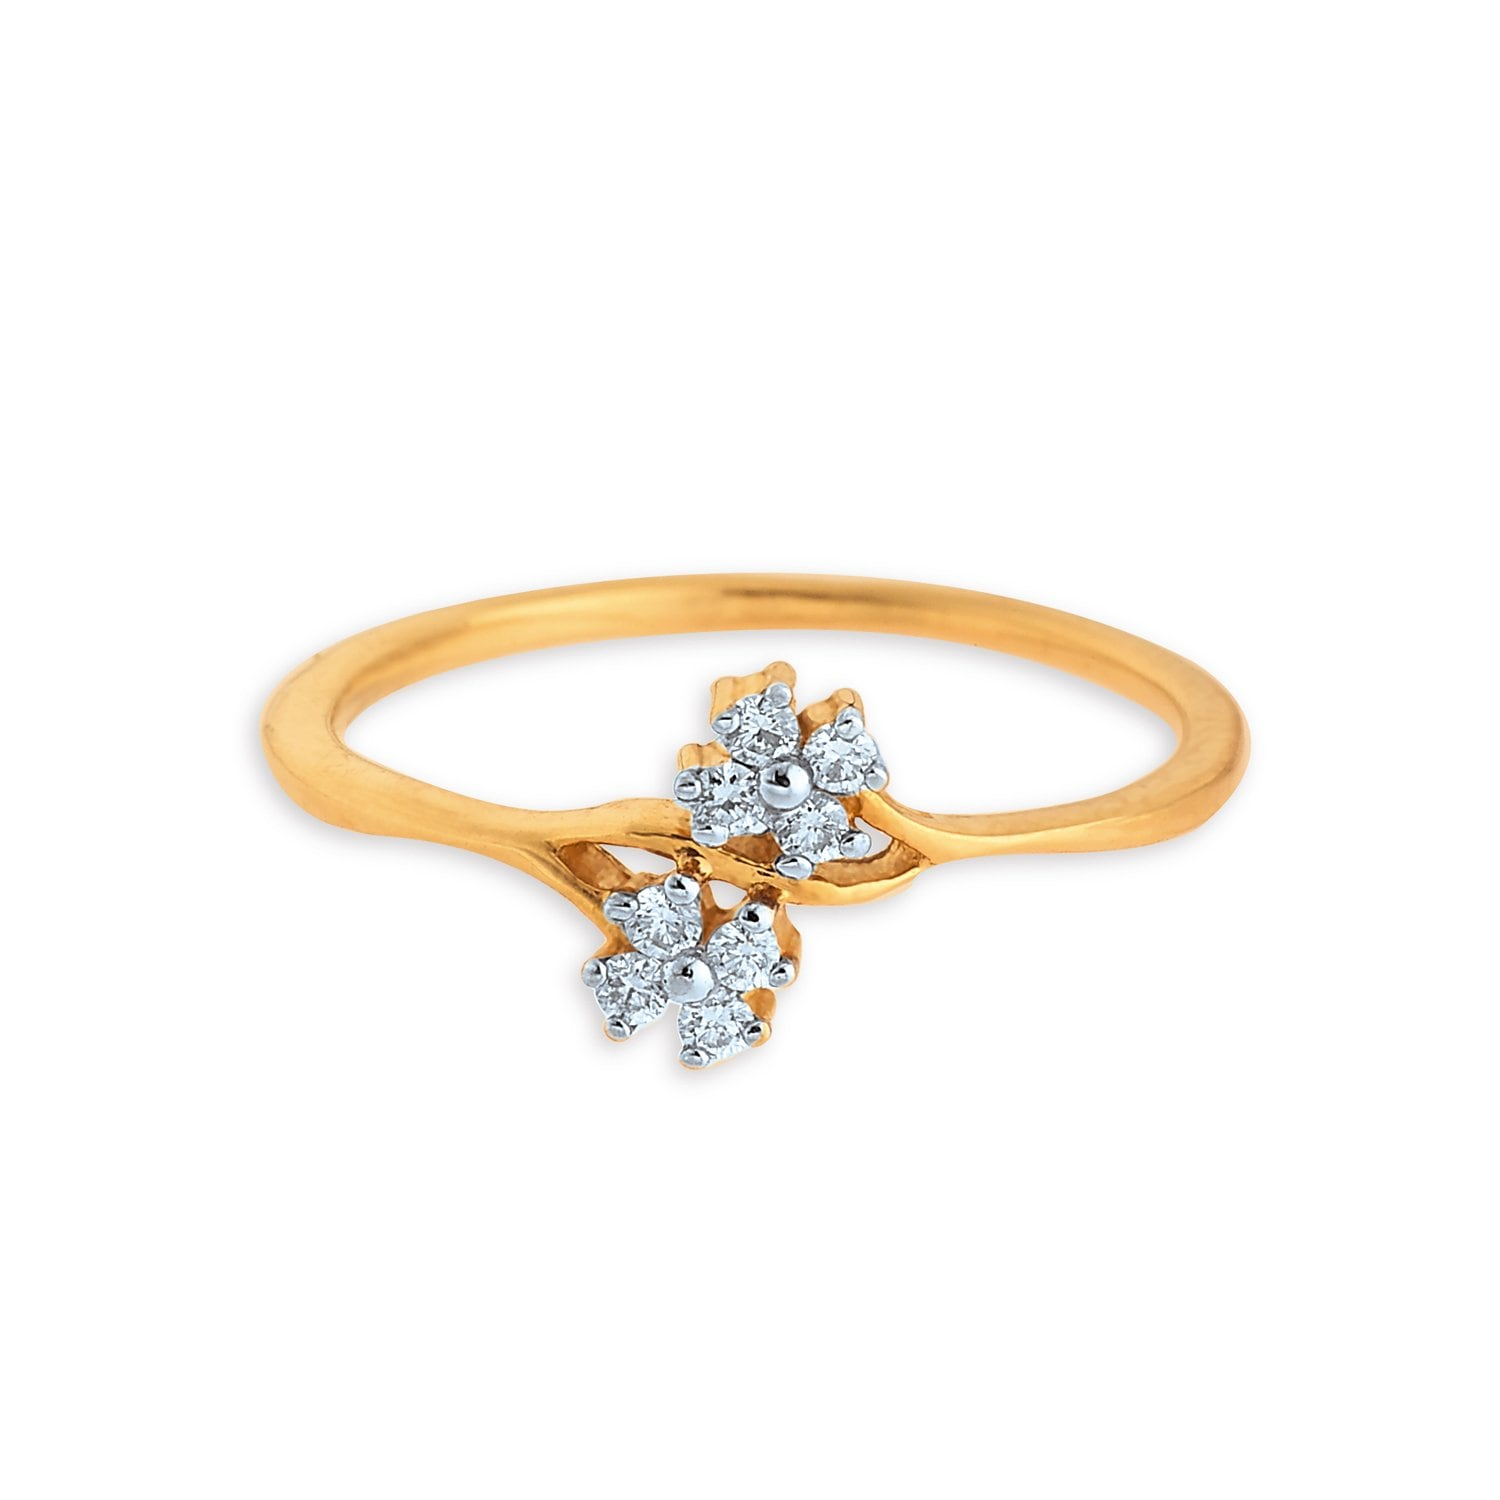 rings floral tanishq gold design titan women best buy with at online india yellow product finger ring price for jewellery